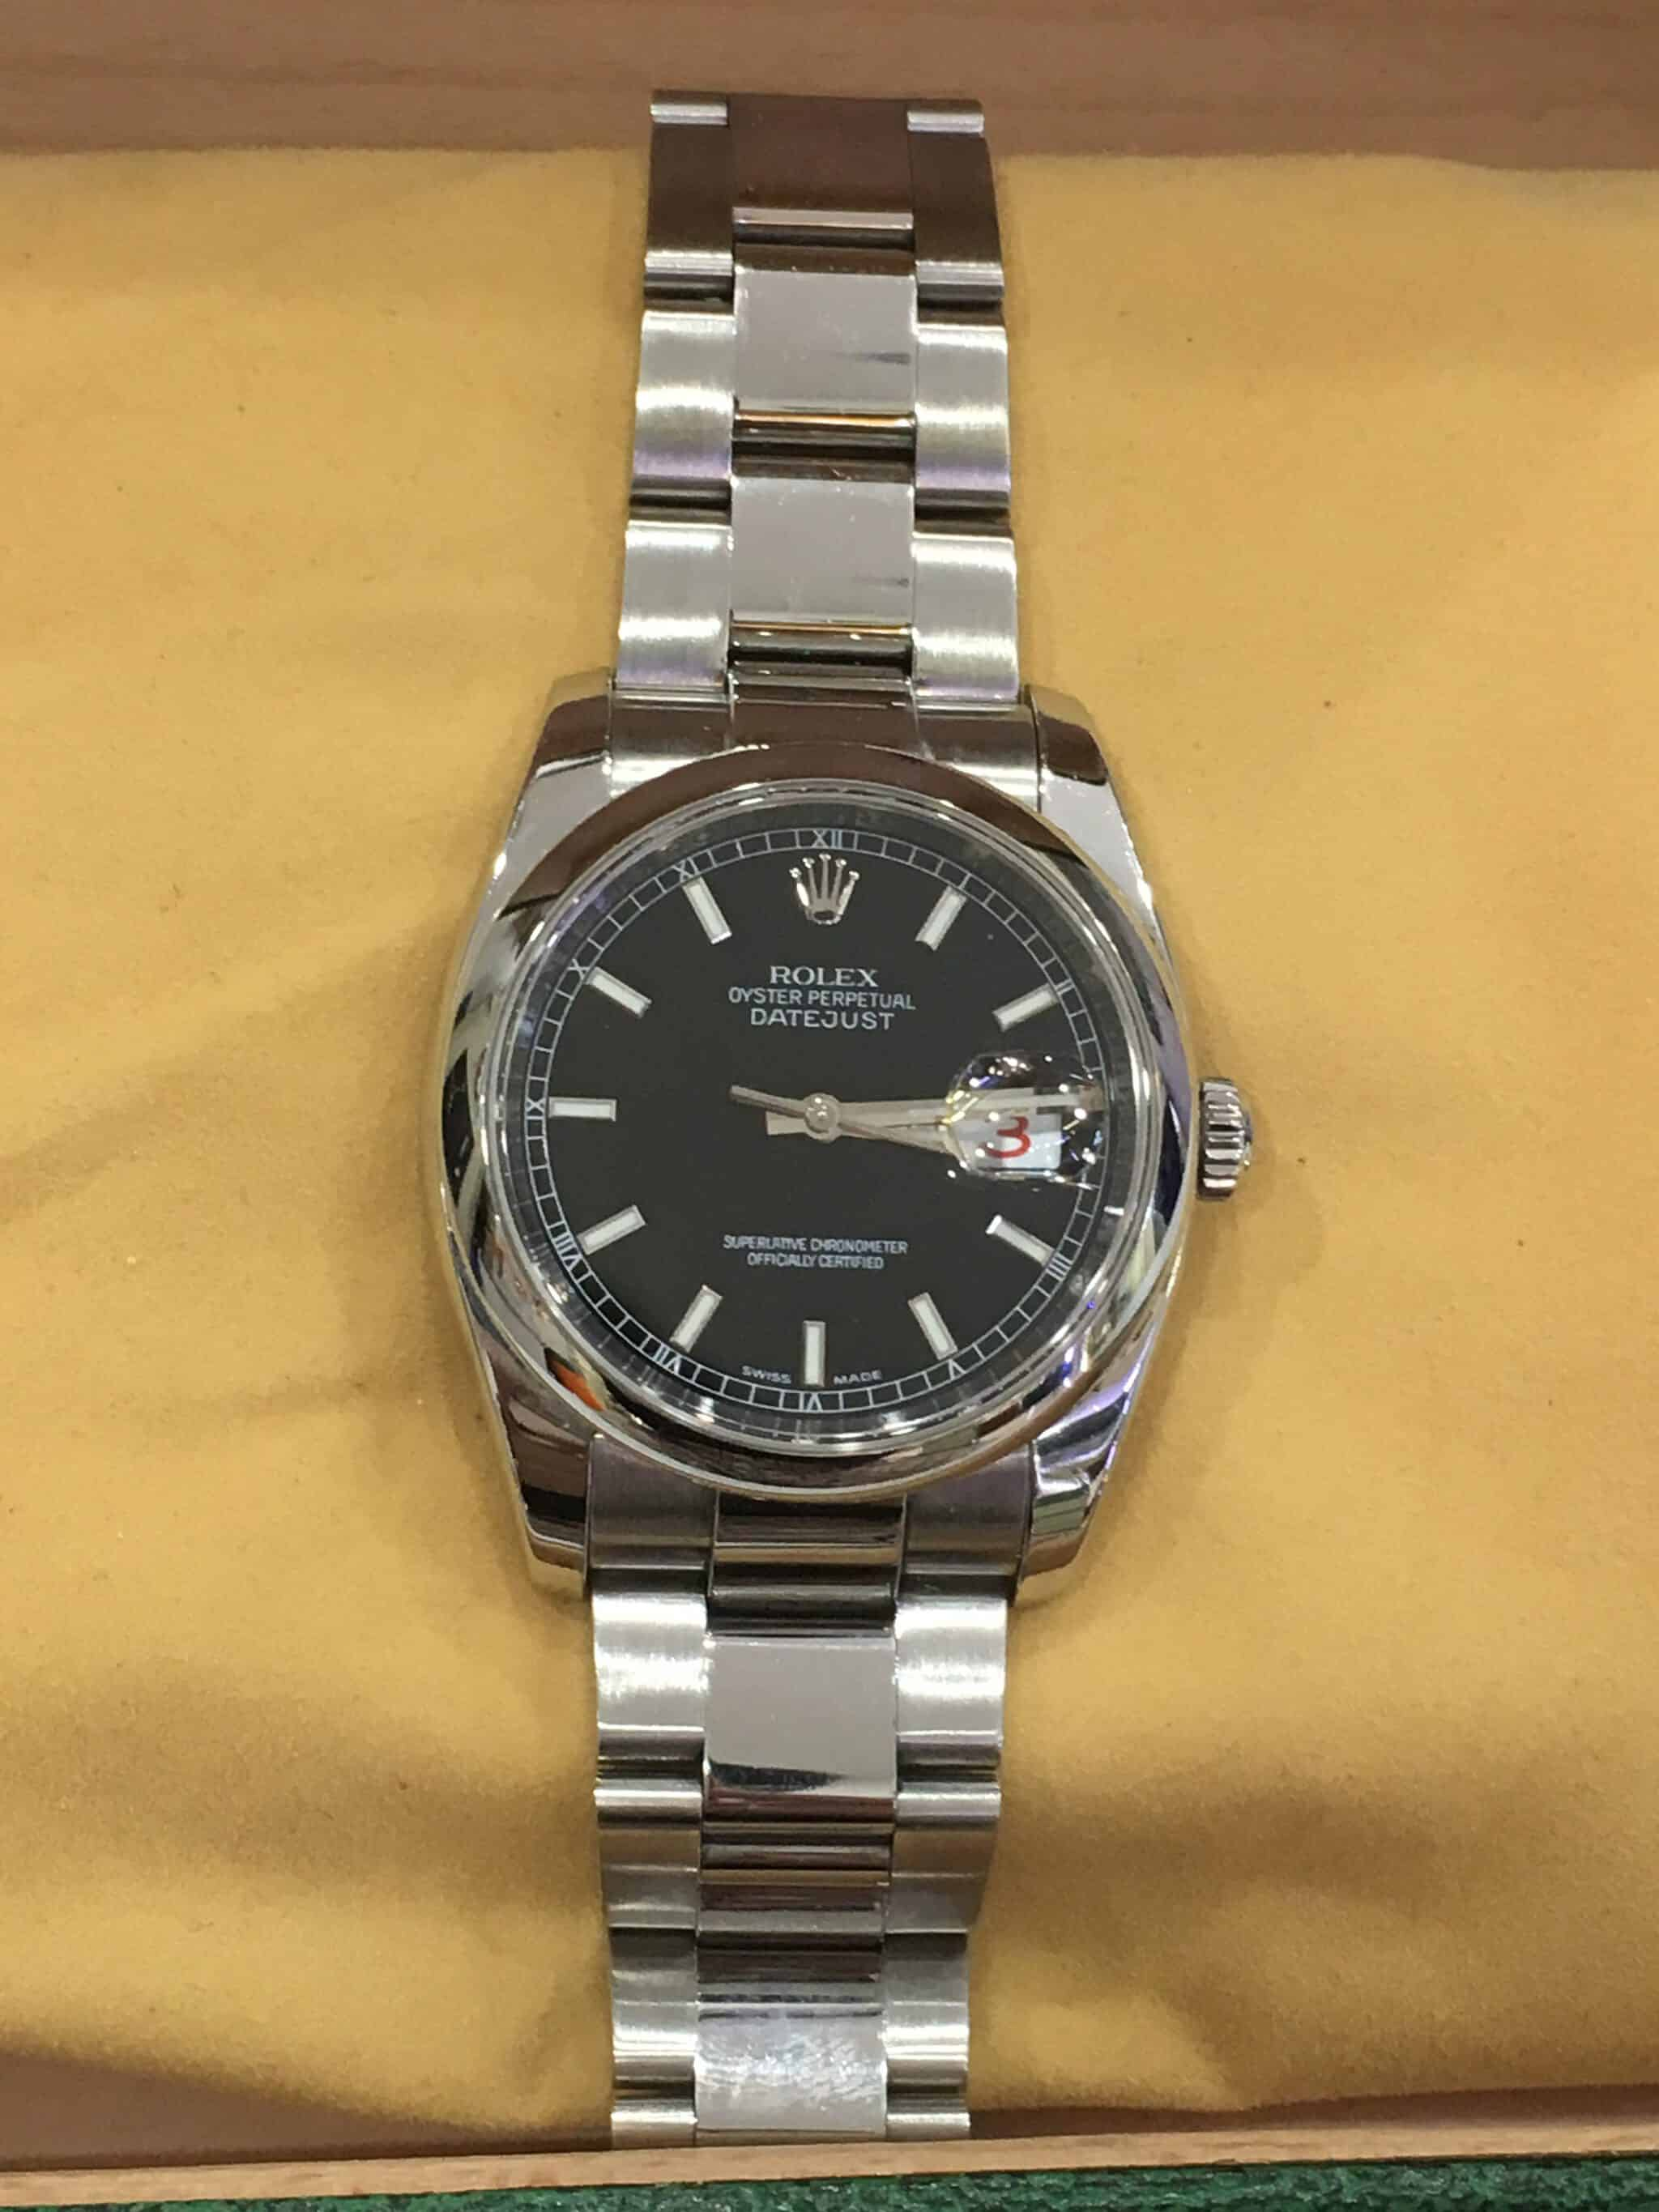 on new img what wear tag you and have tons brand few m taken forums it but more yet i haven a t do of photos threads watches phone there wide used other world heuer s out calibre